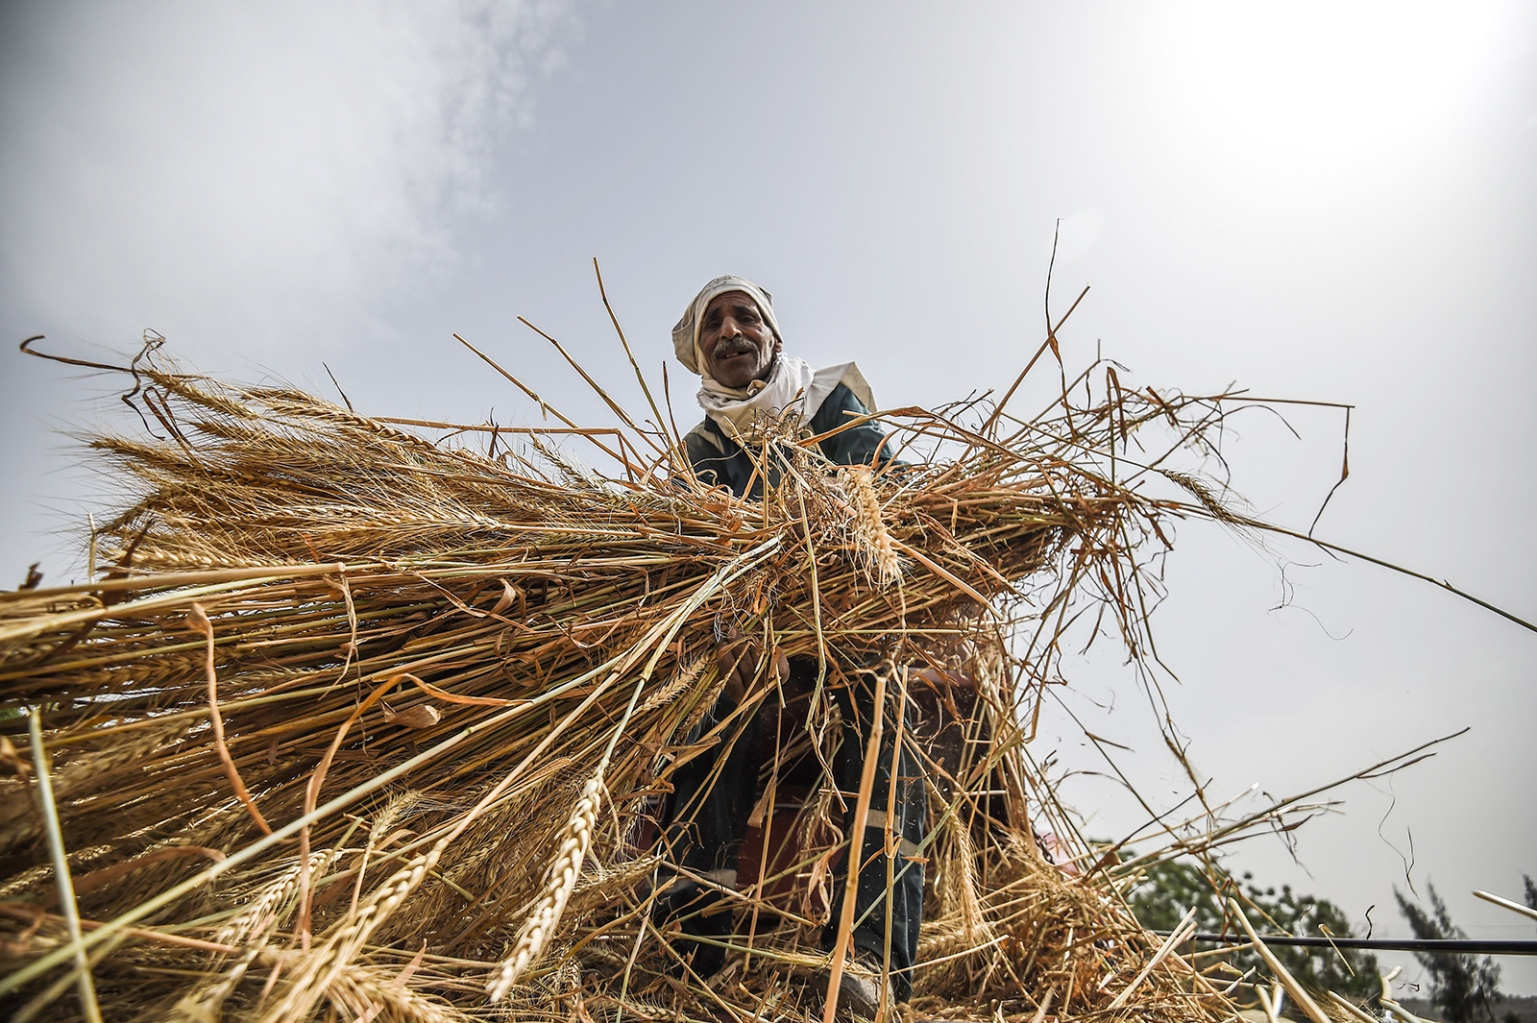 An Egyptian worker harvests wheat in Saqiyat al-Manqadi village in the northern Nile Delta province of Menoufia in Egypt on May 1. MOHAMED EL-SHAHED/AFP/Getty Images